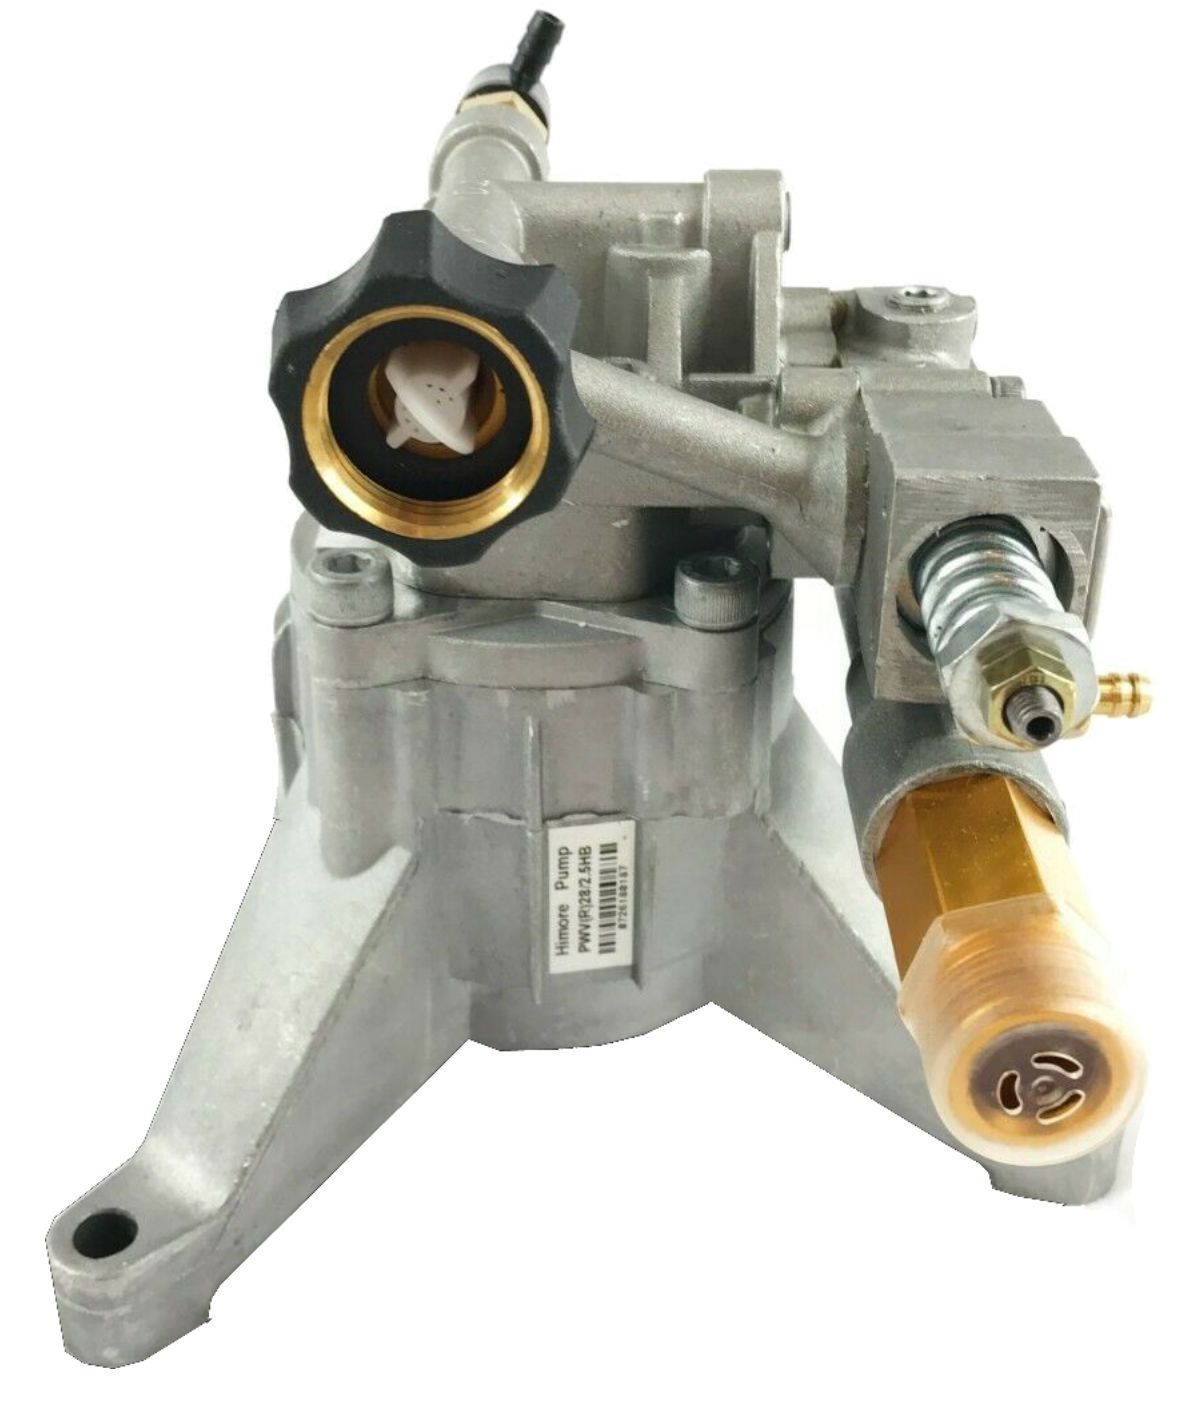 2700 PSI PRESSURE WASHER WATER PUMP Campbell Hausfeld PW2050V1LE - AE-Power